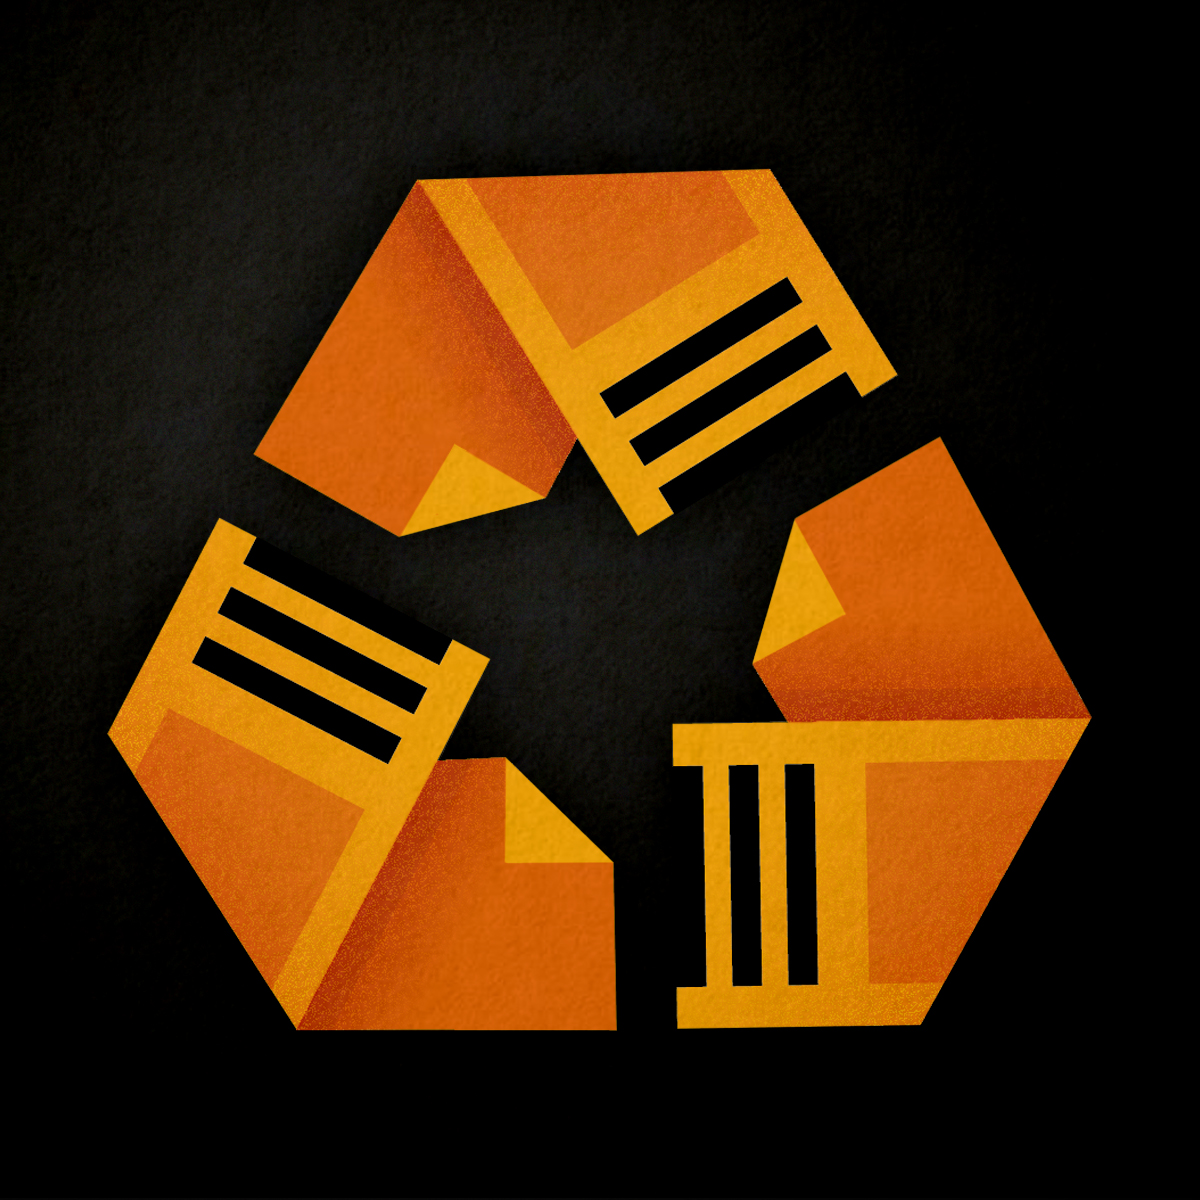 recycling symbol with scripts